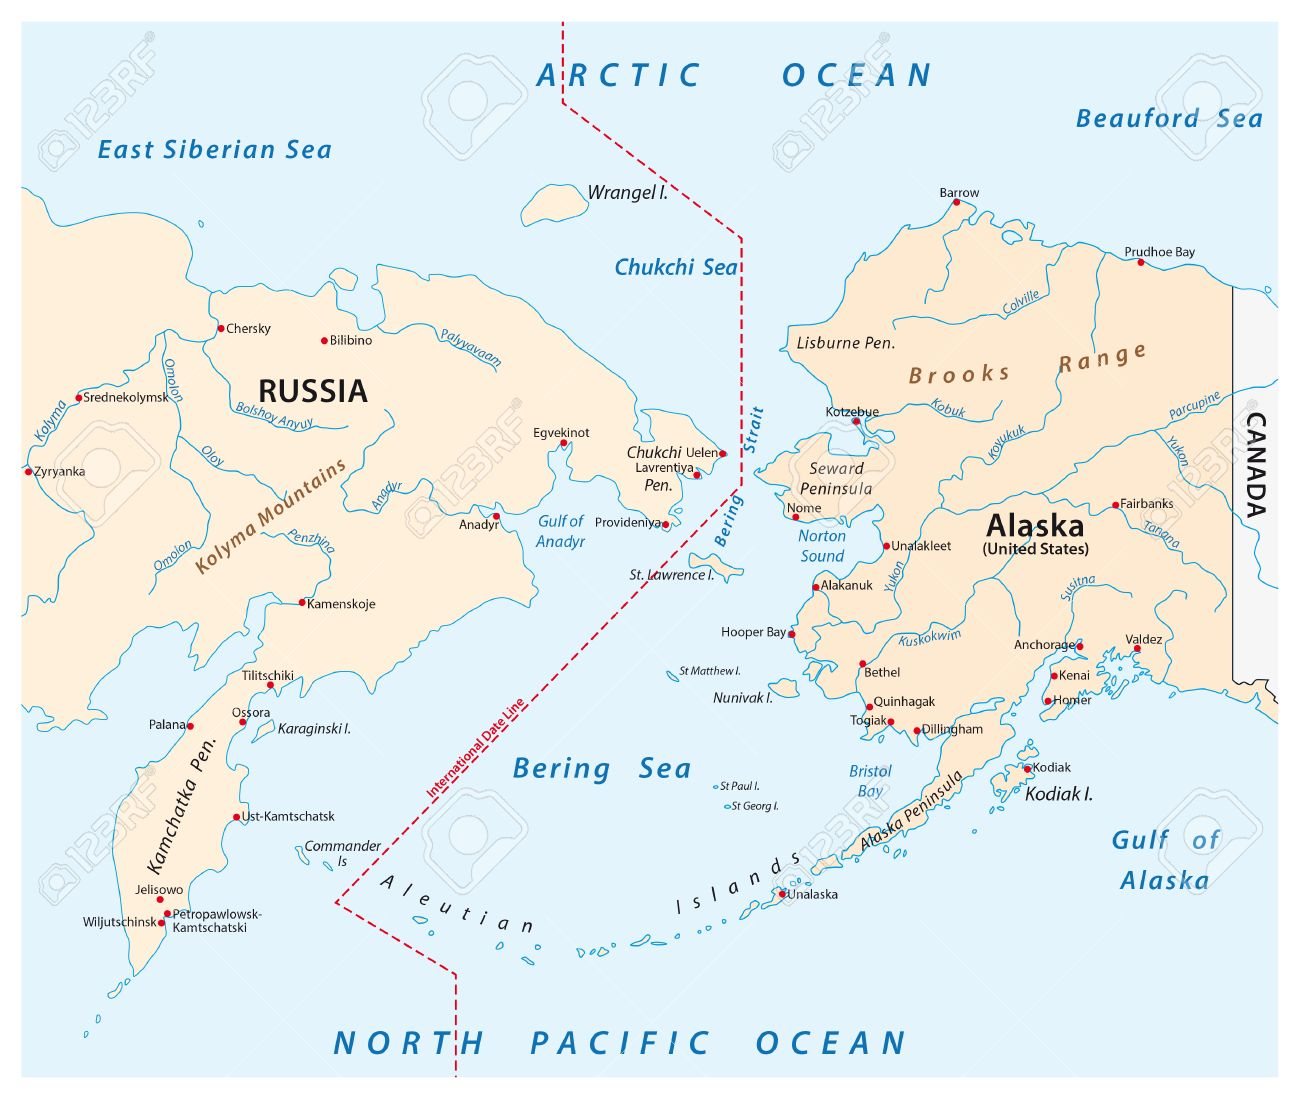 Vector Map Of The Bering Strait Between Russia And Alaska Royalty - Alaska map russia